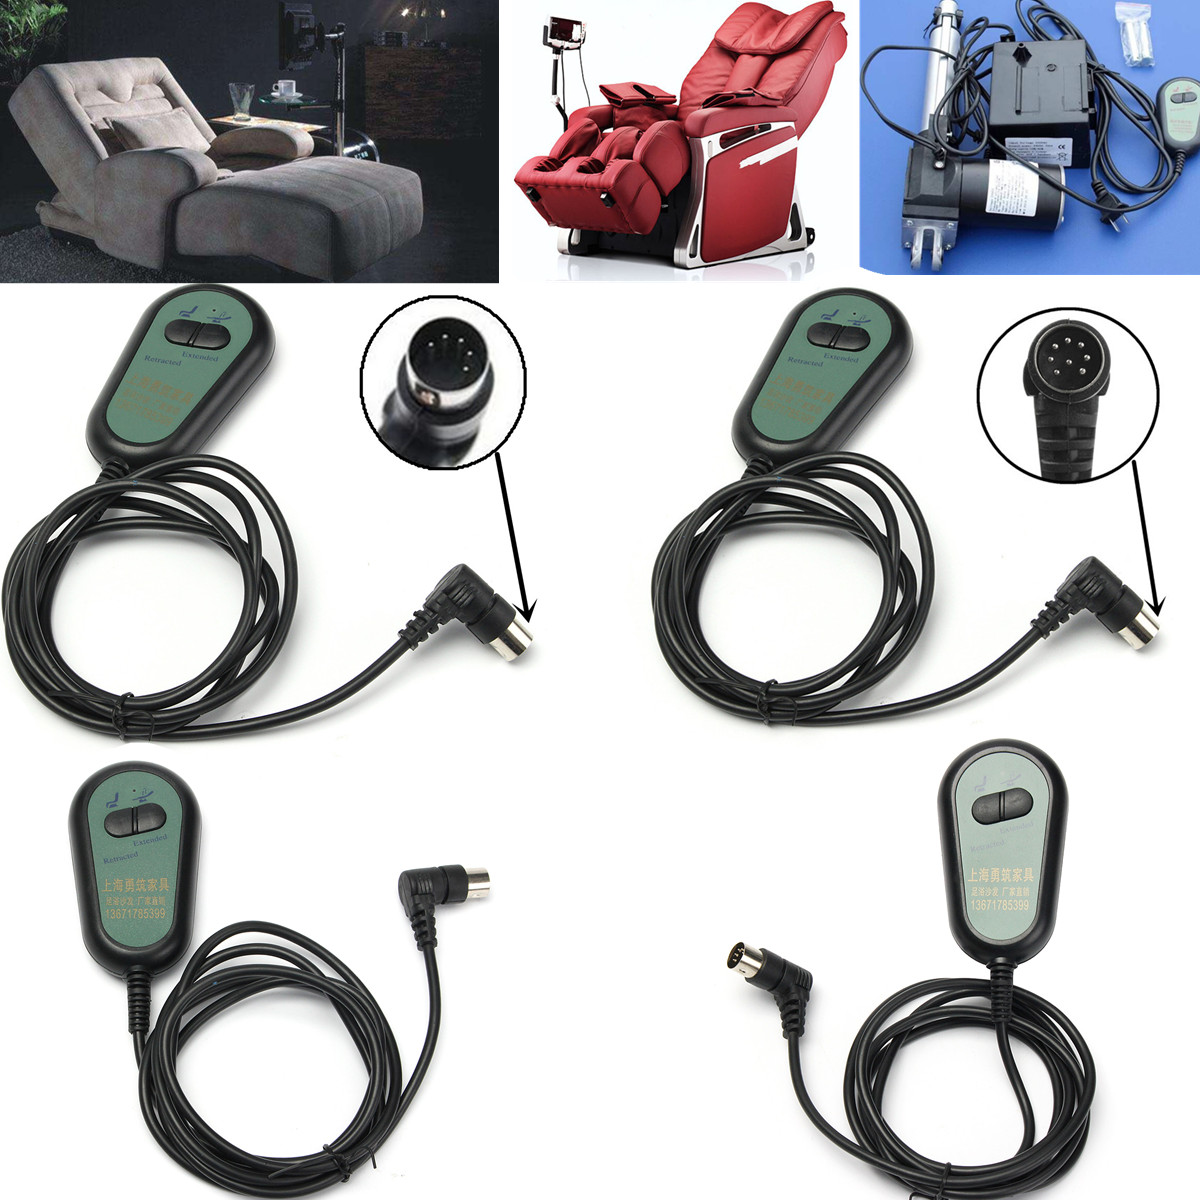 5/8 Pin 3/5 Wires 2 Button Electric Recliner Chair Hand Switch Remote Control